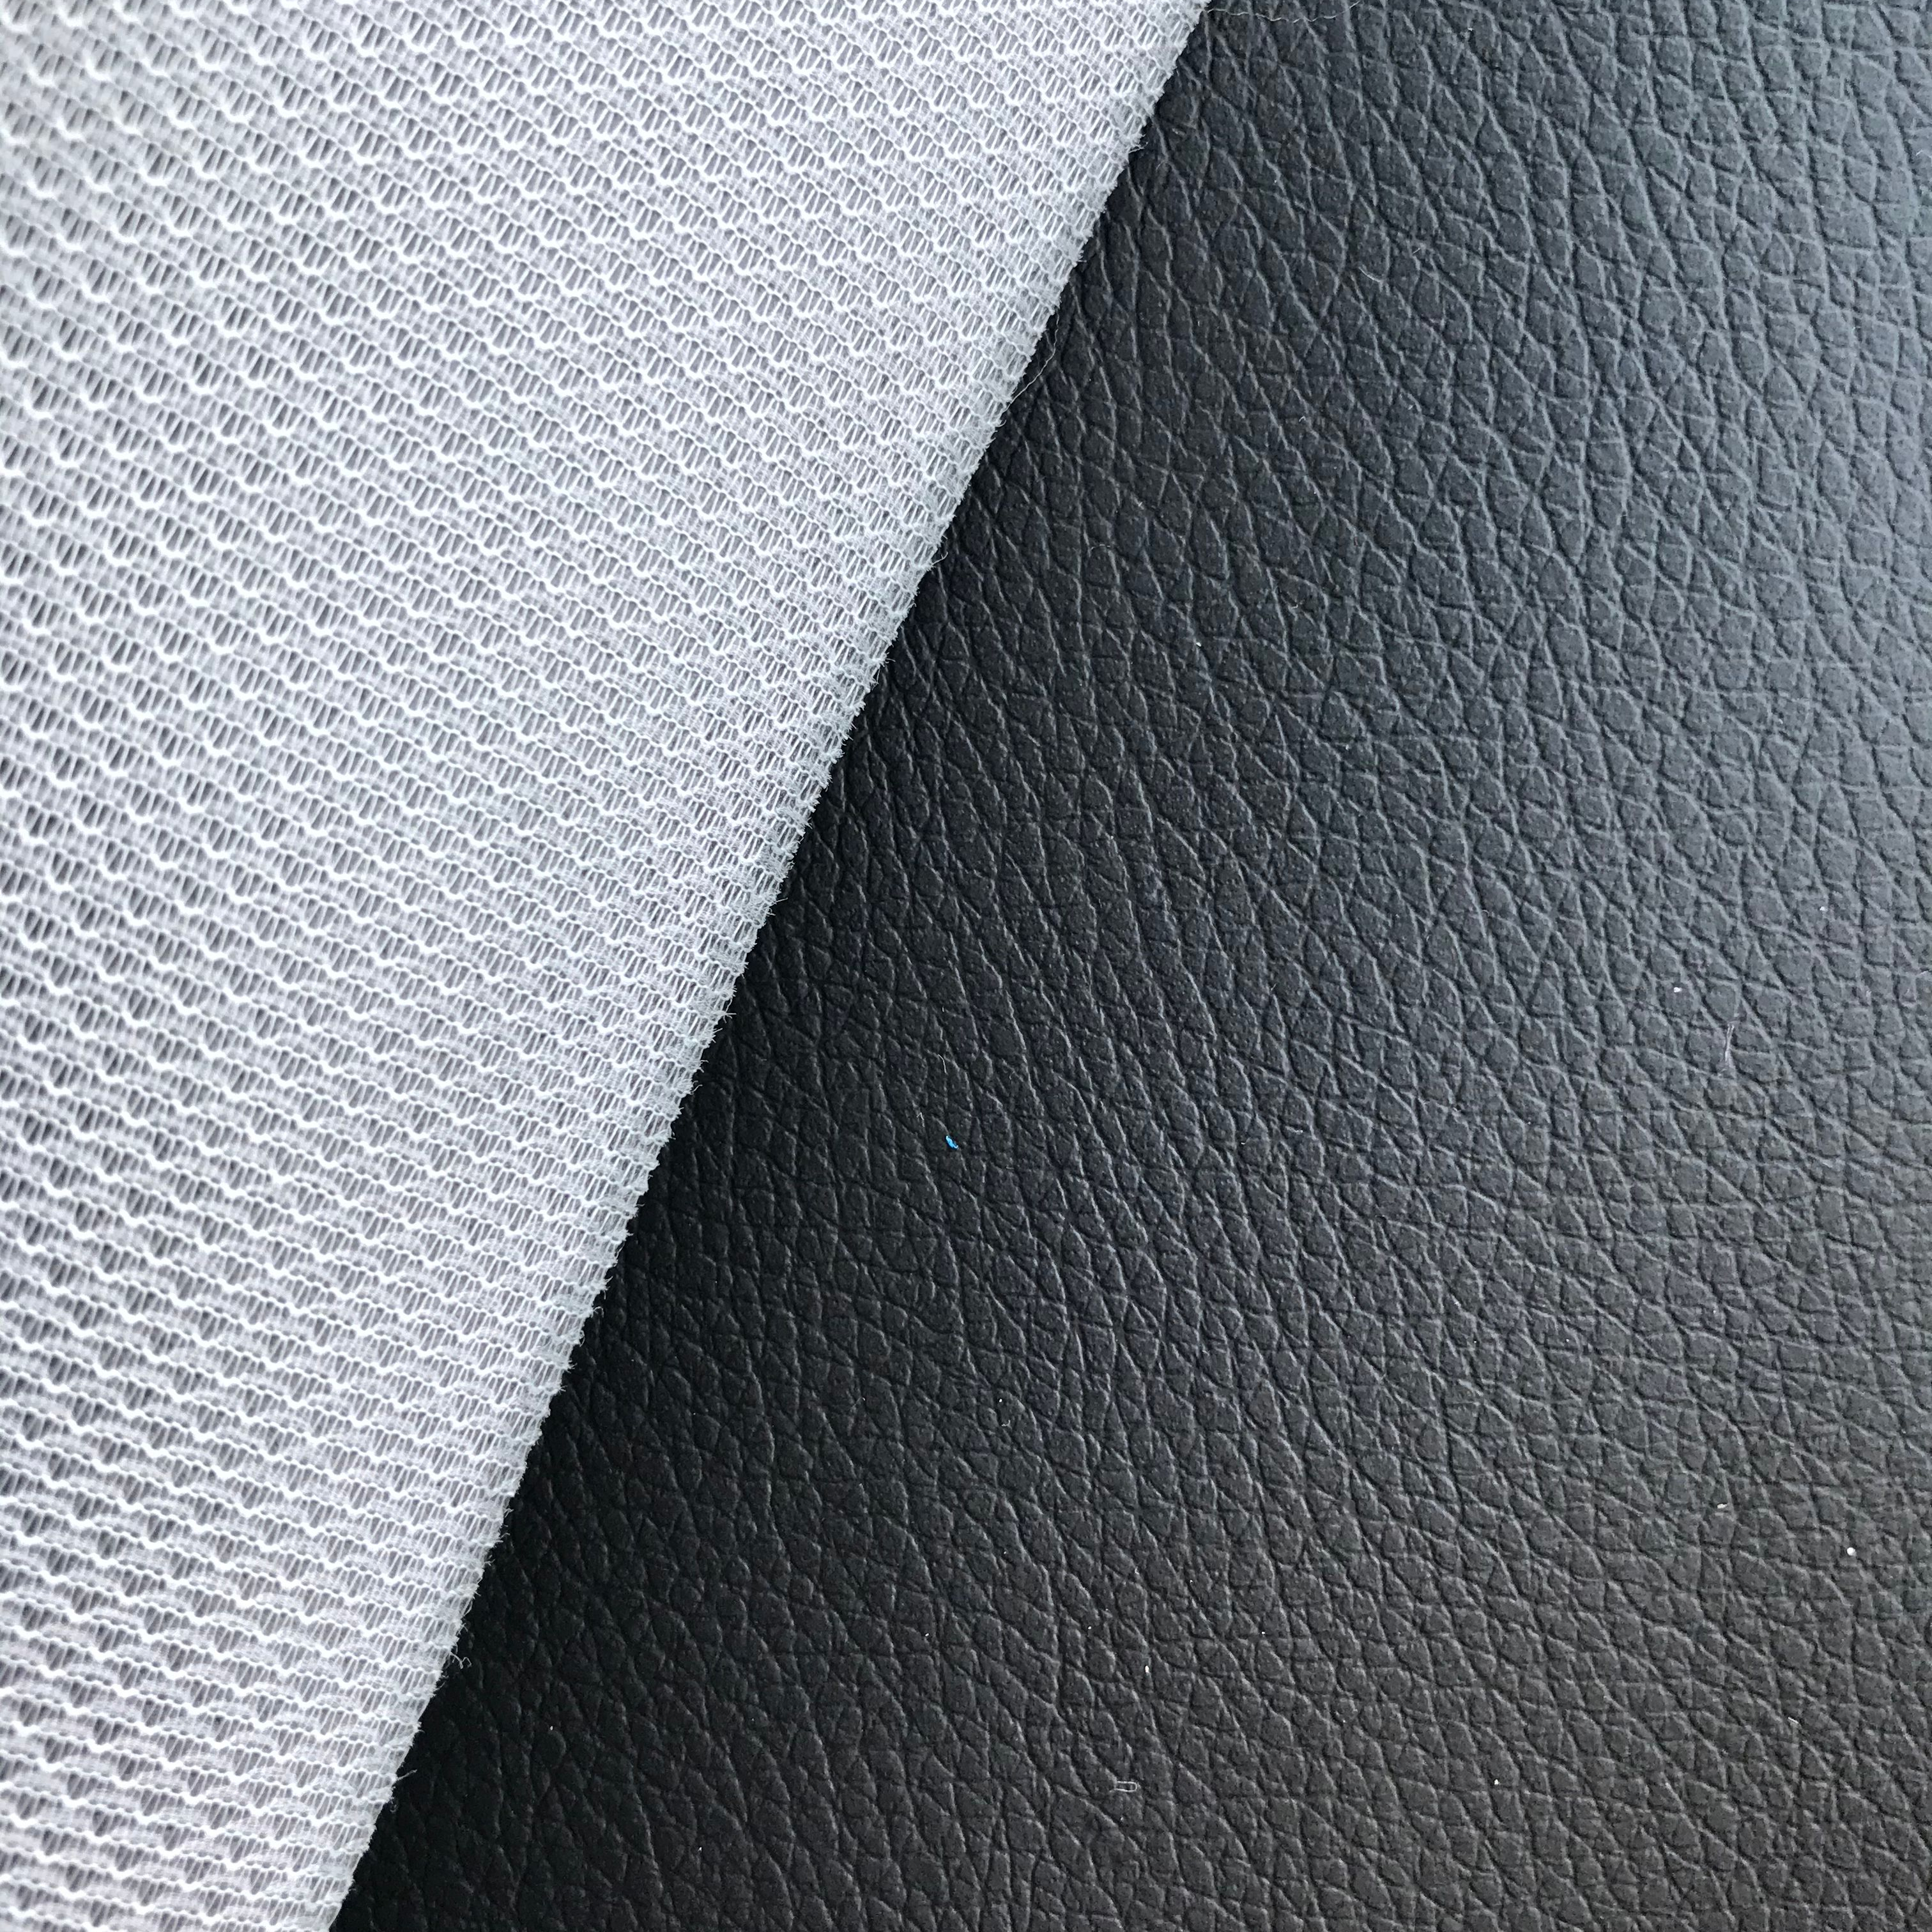 pvc Synthetic Leather for sofa/furniture upholstery for car seat